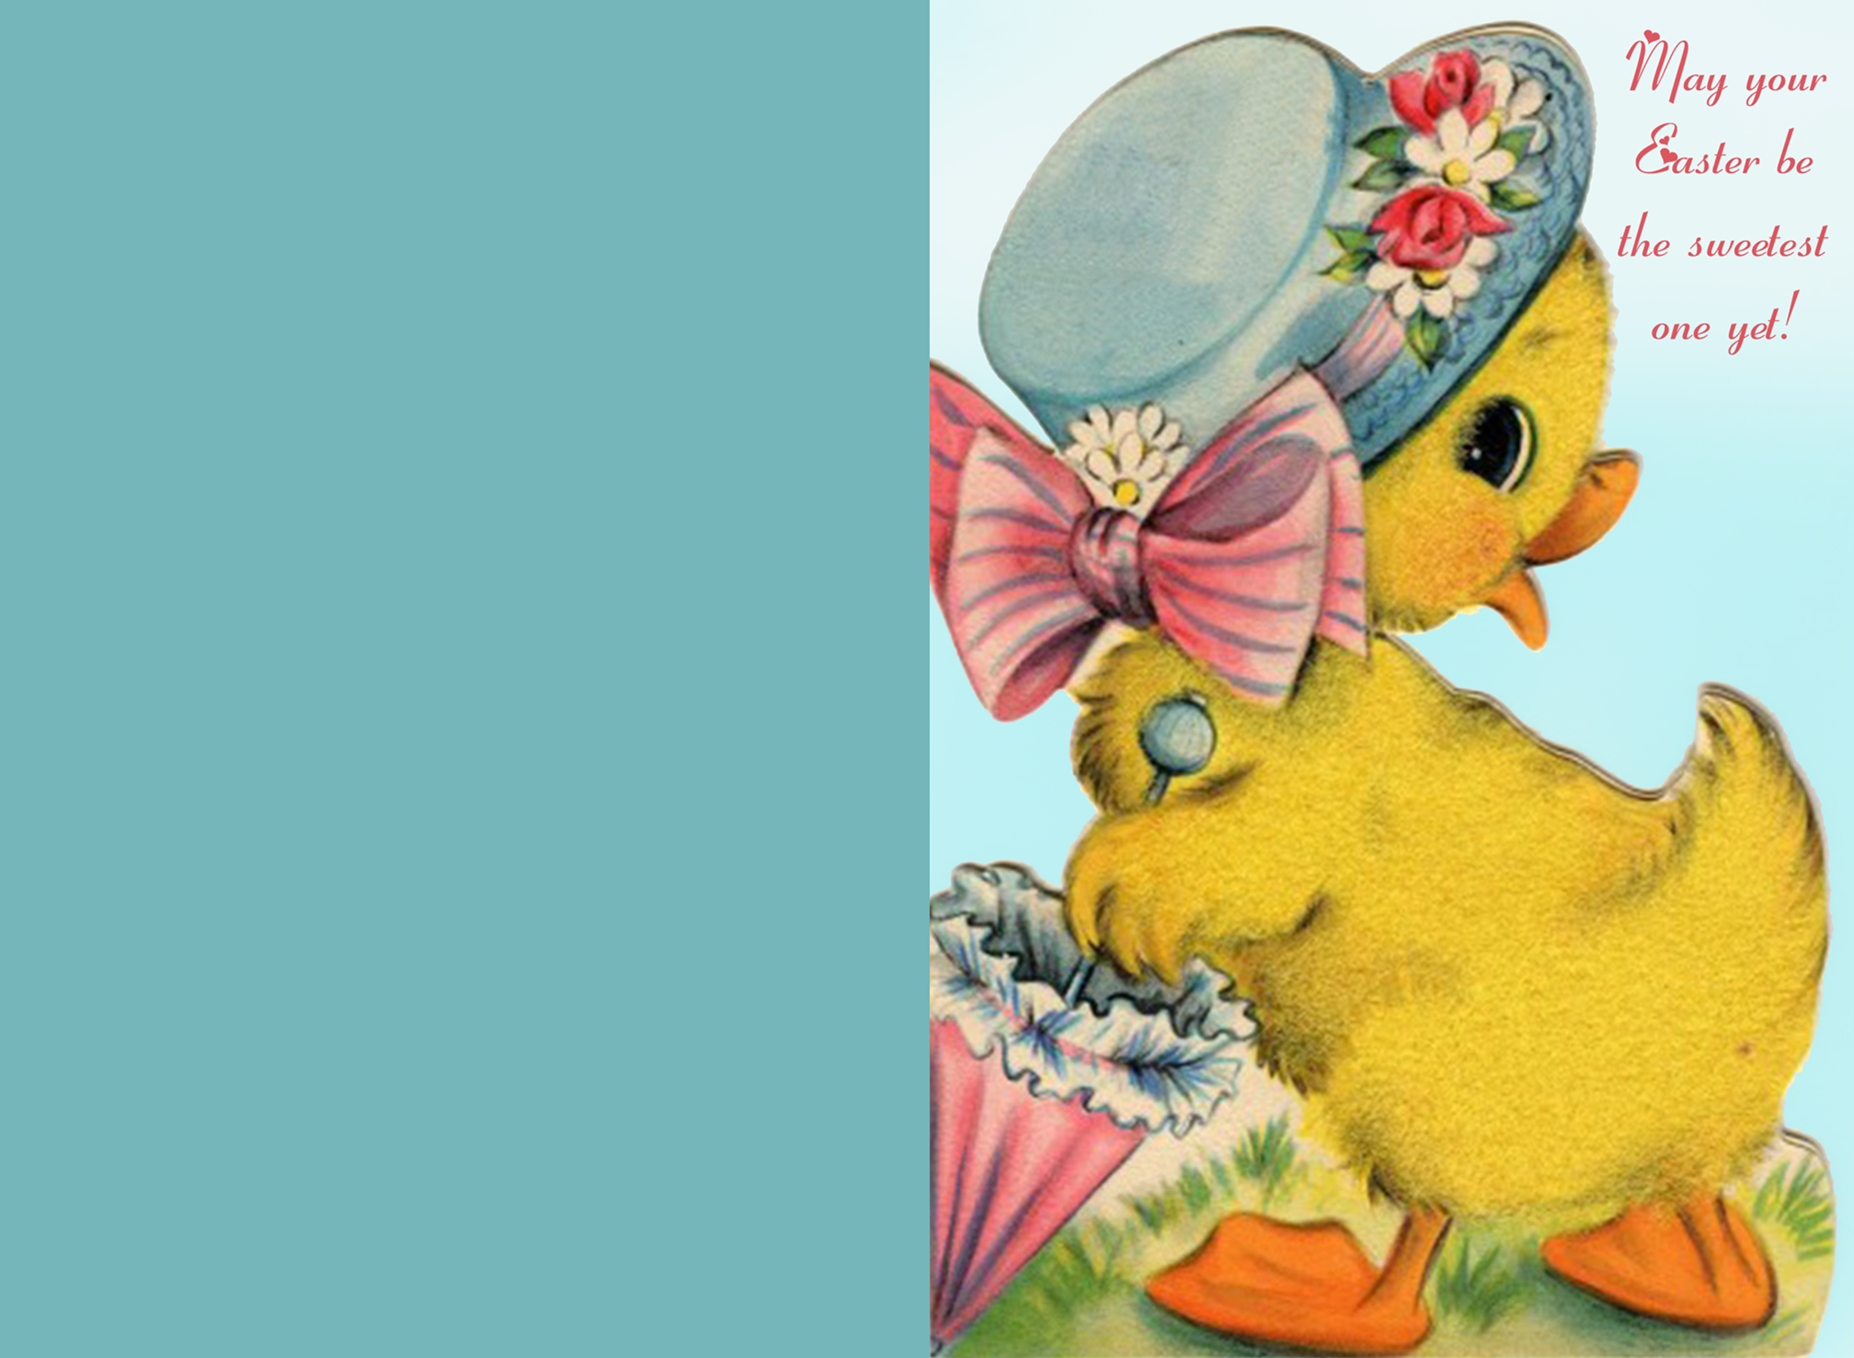 Cute printable easter card with yellow duckling.